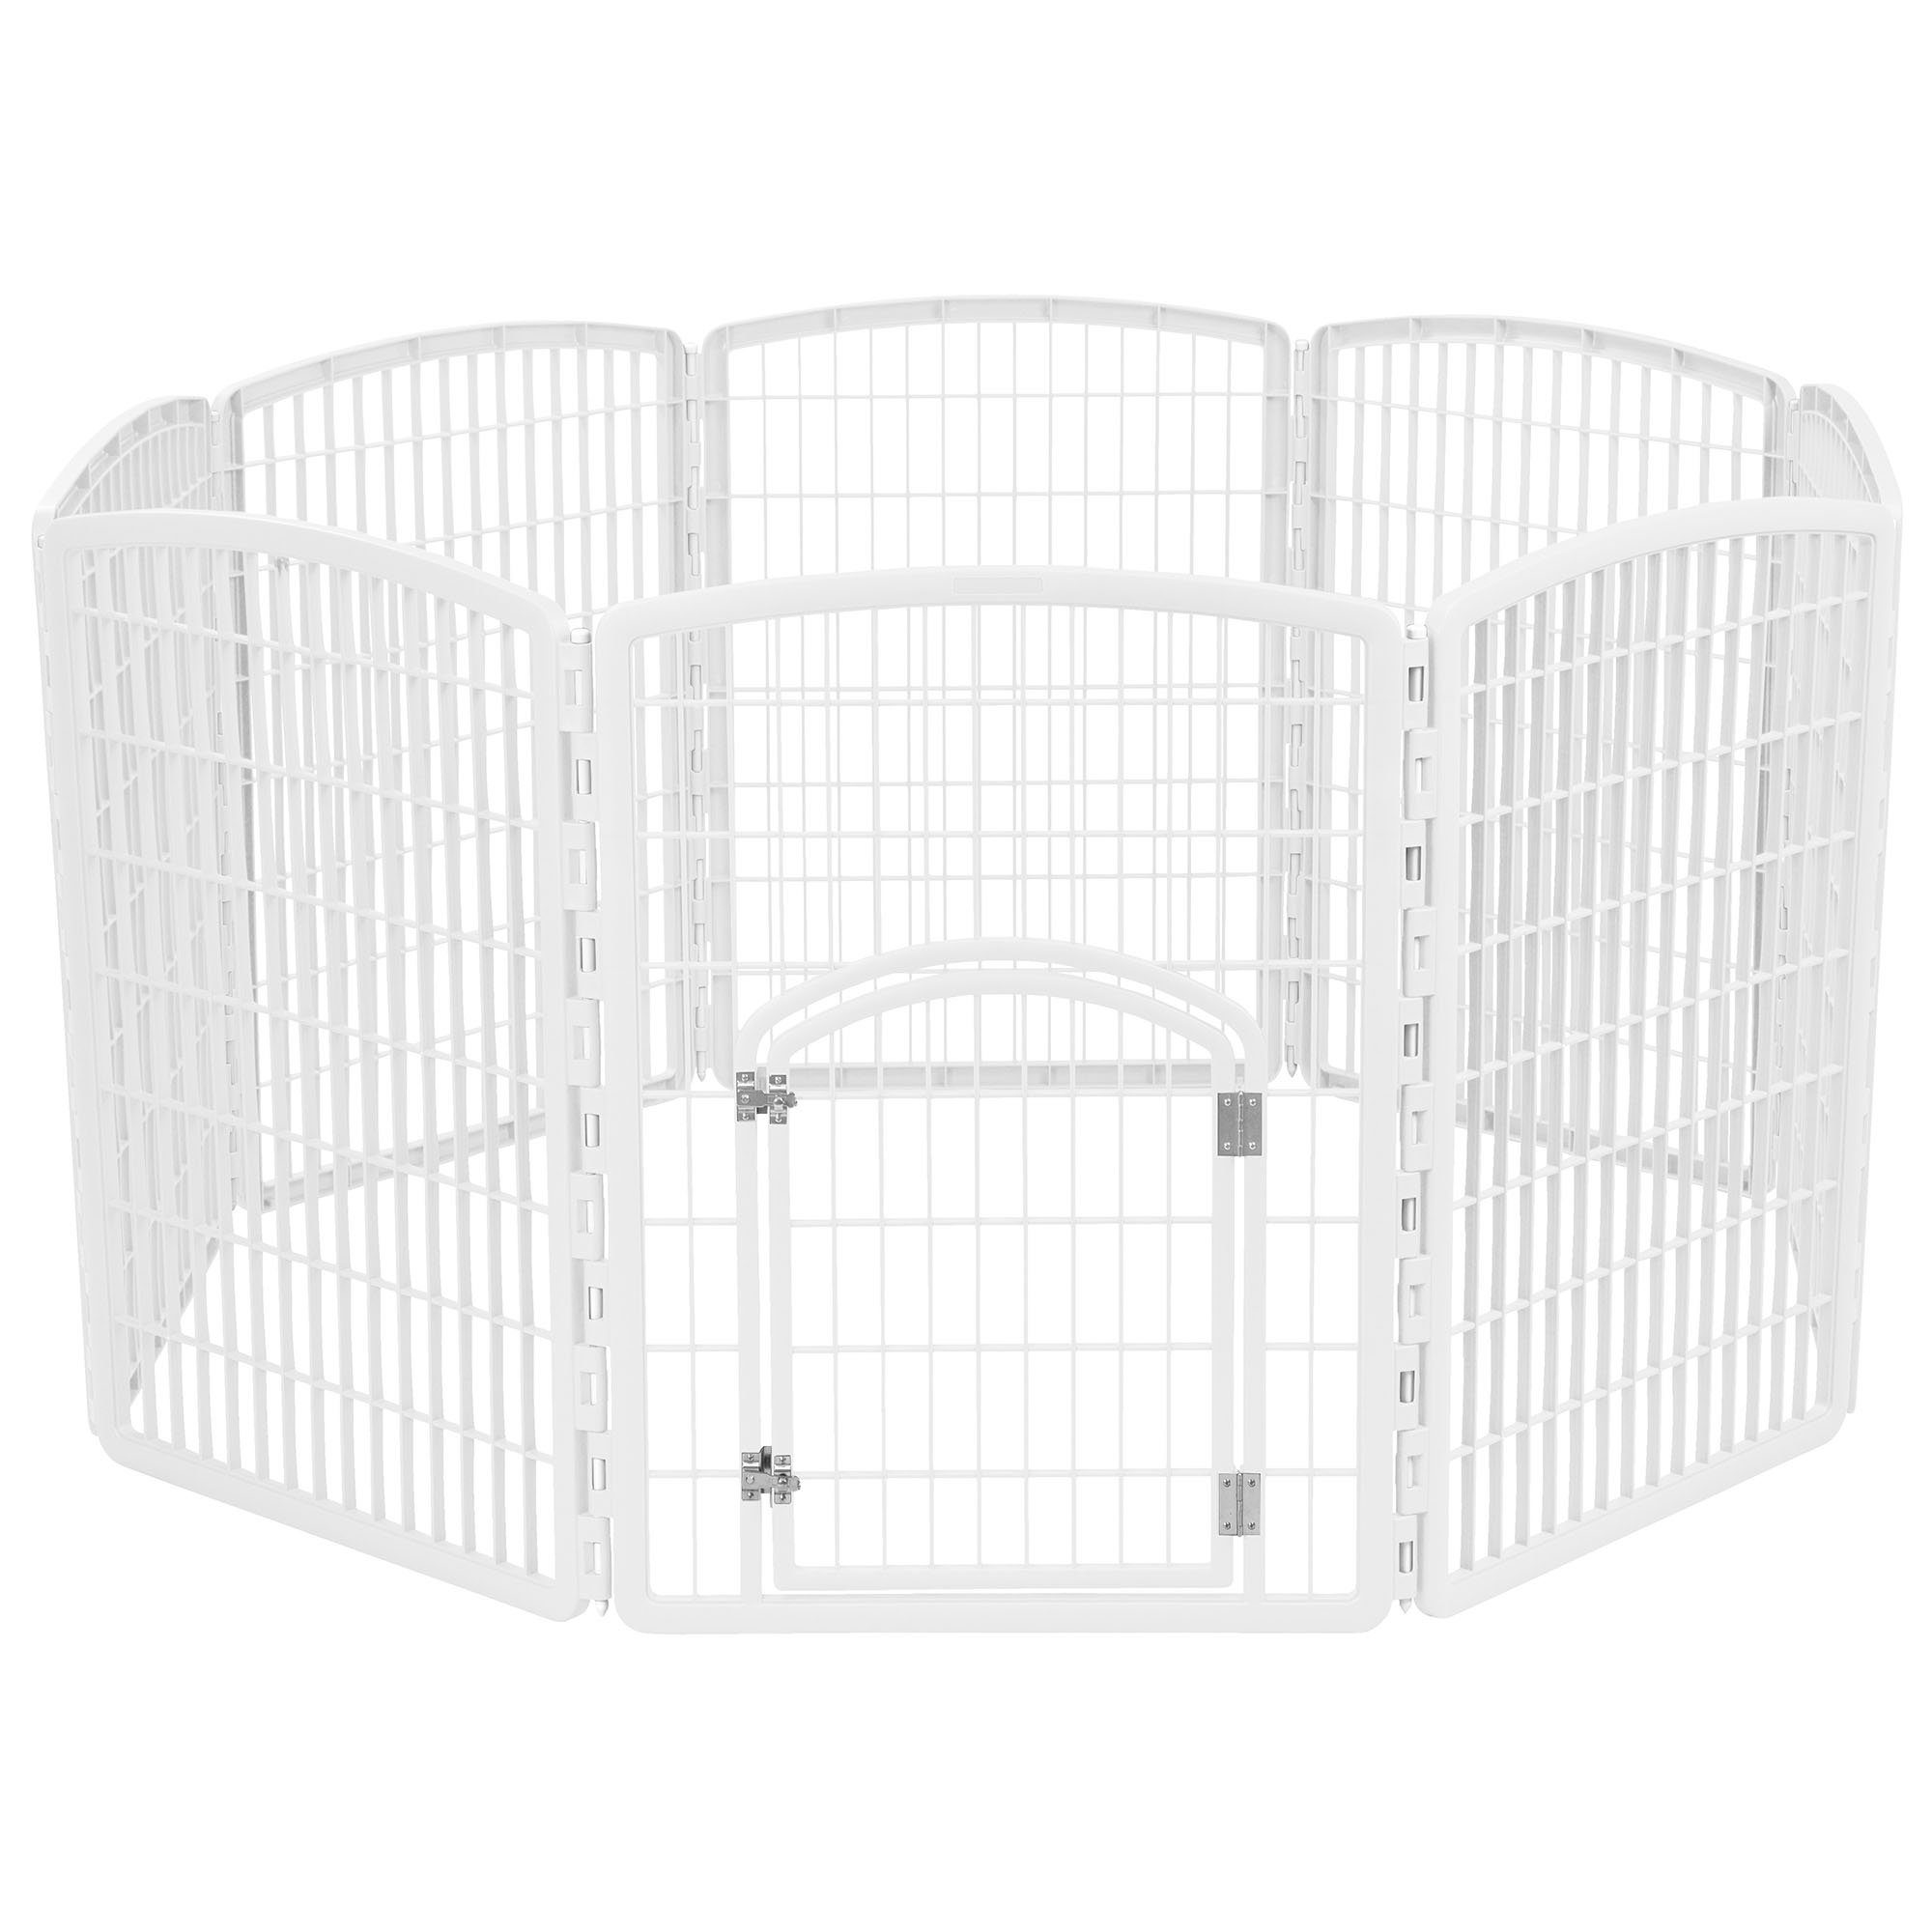 Dog Exercise Pens: Indoor & Outdoor Dog Pens | Petco